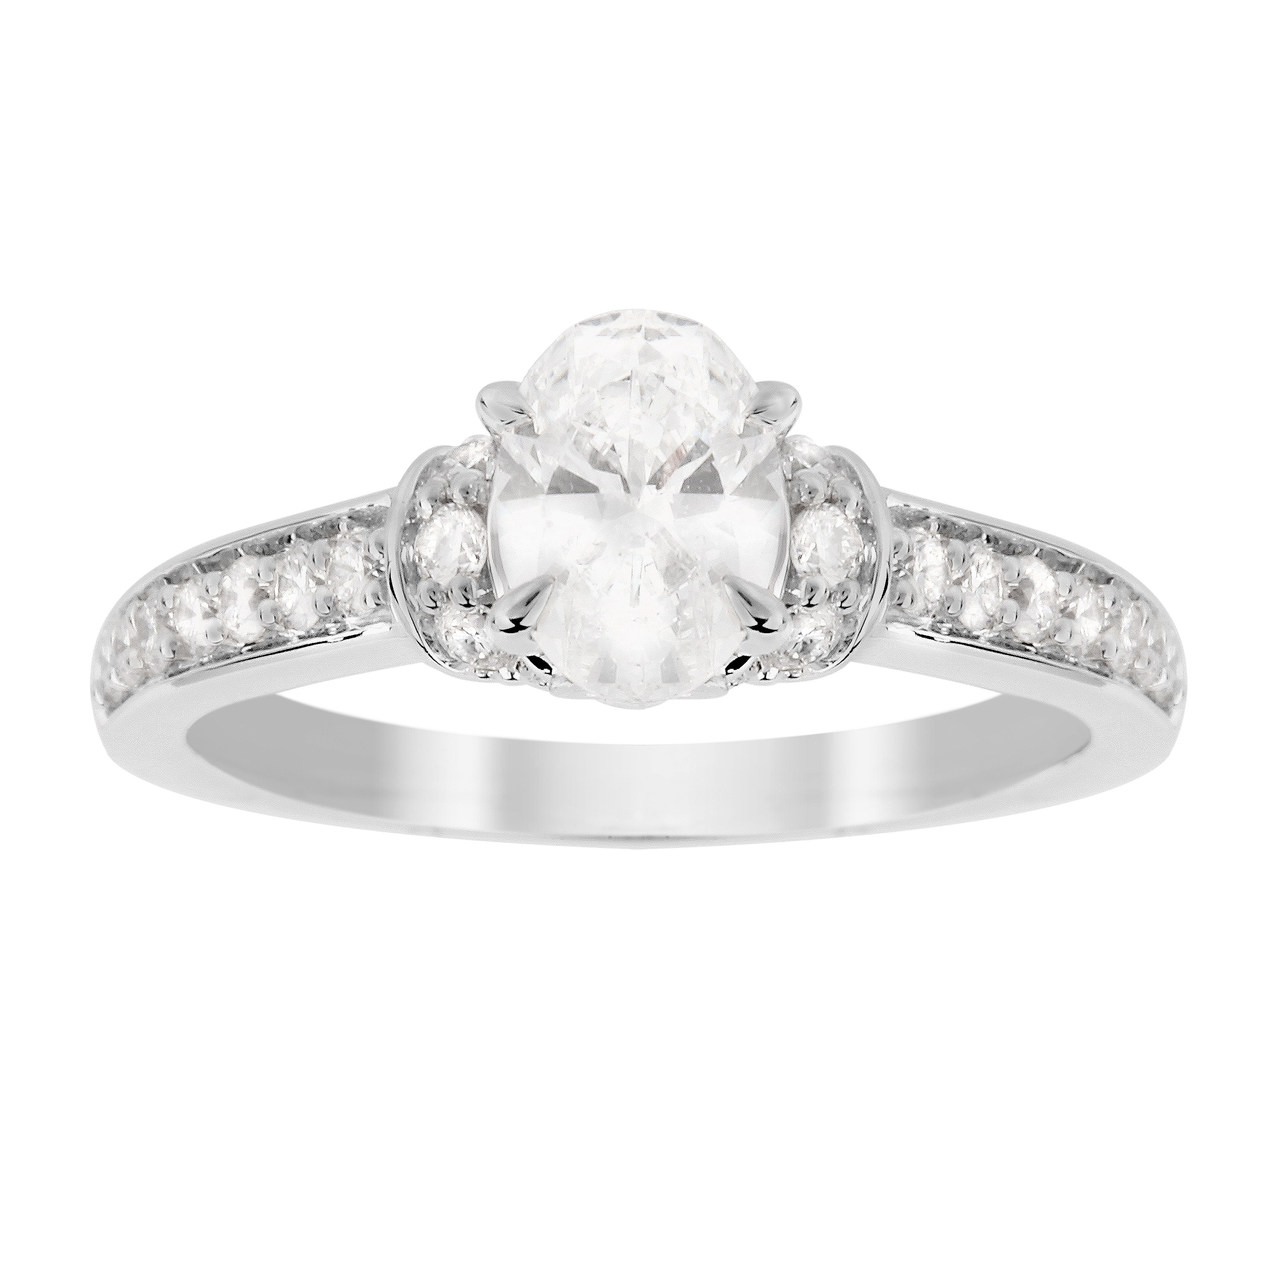 Jenny Packham Oval Cut 1.14 Carat Total Weight Diamond Art Deco Style Ring in 18 Carat White Gold